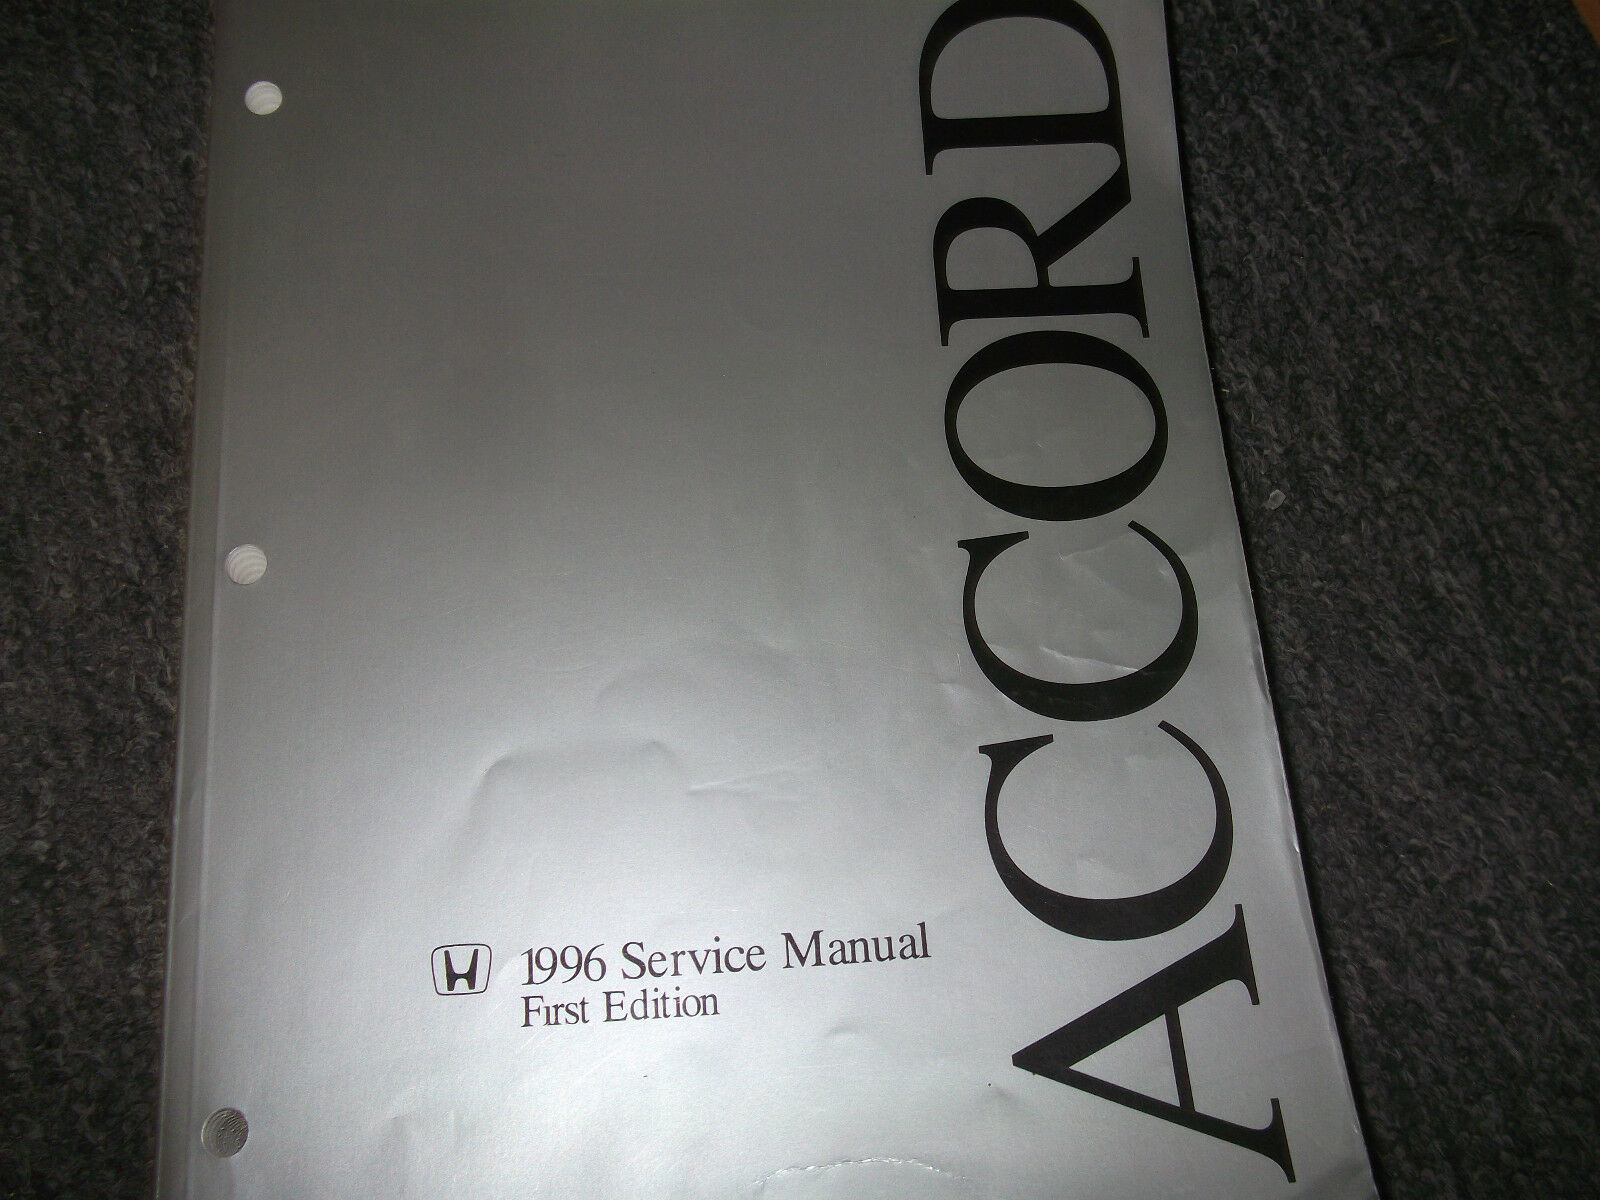 1996 HONDA ACCORD Repair Service Shop Manual FACTORY DEALERSHIP BRAND NEW 1  of 4Only 2 available ...